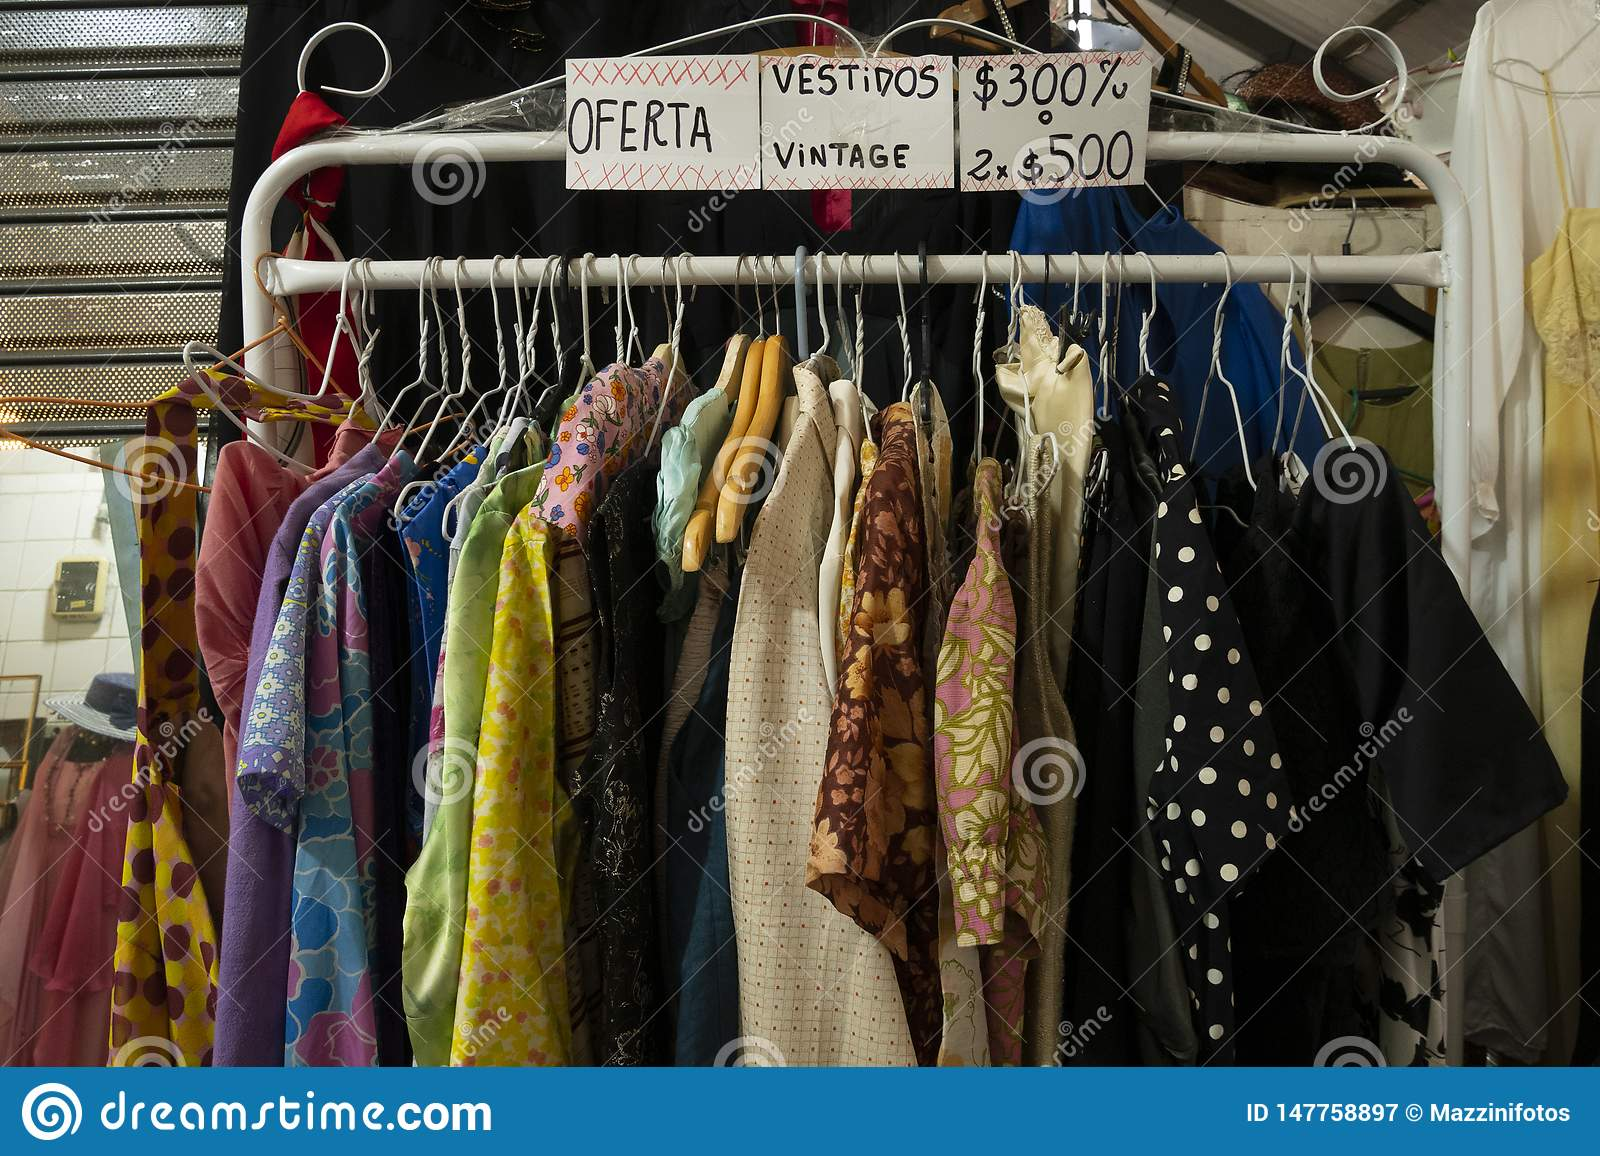 San Telmo Market, in the heart of the old neighborhood of the same name in the city of Buenos Aires, Argentina.